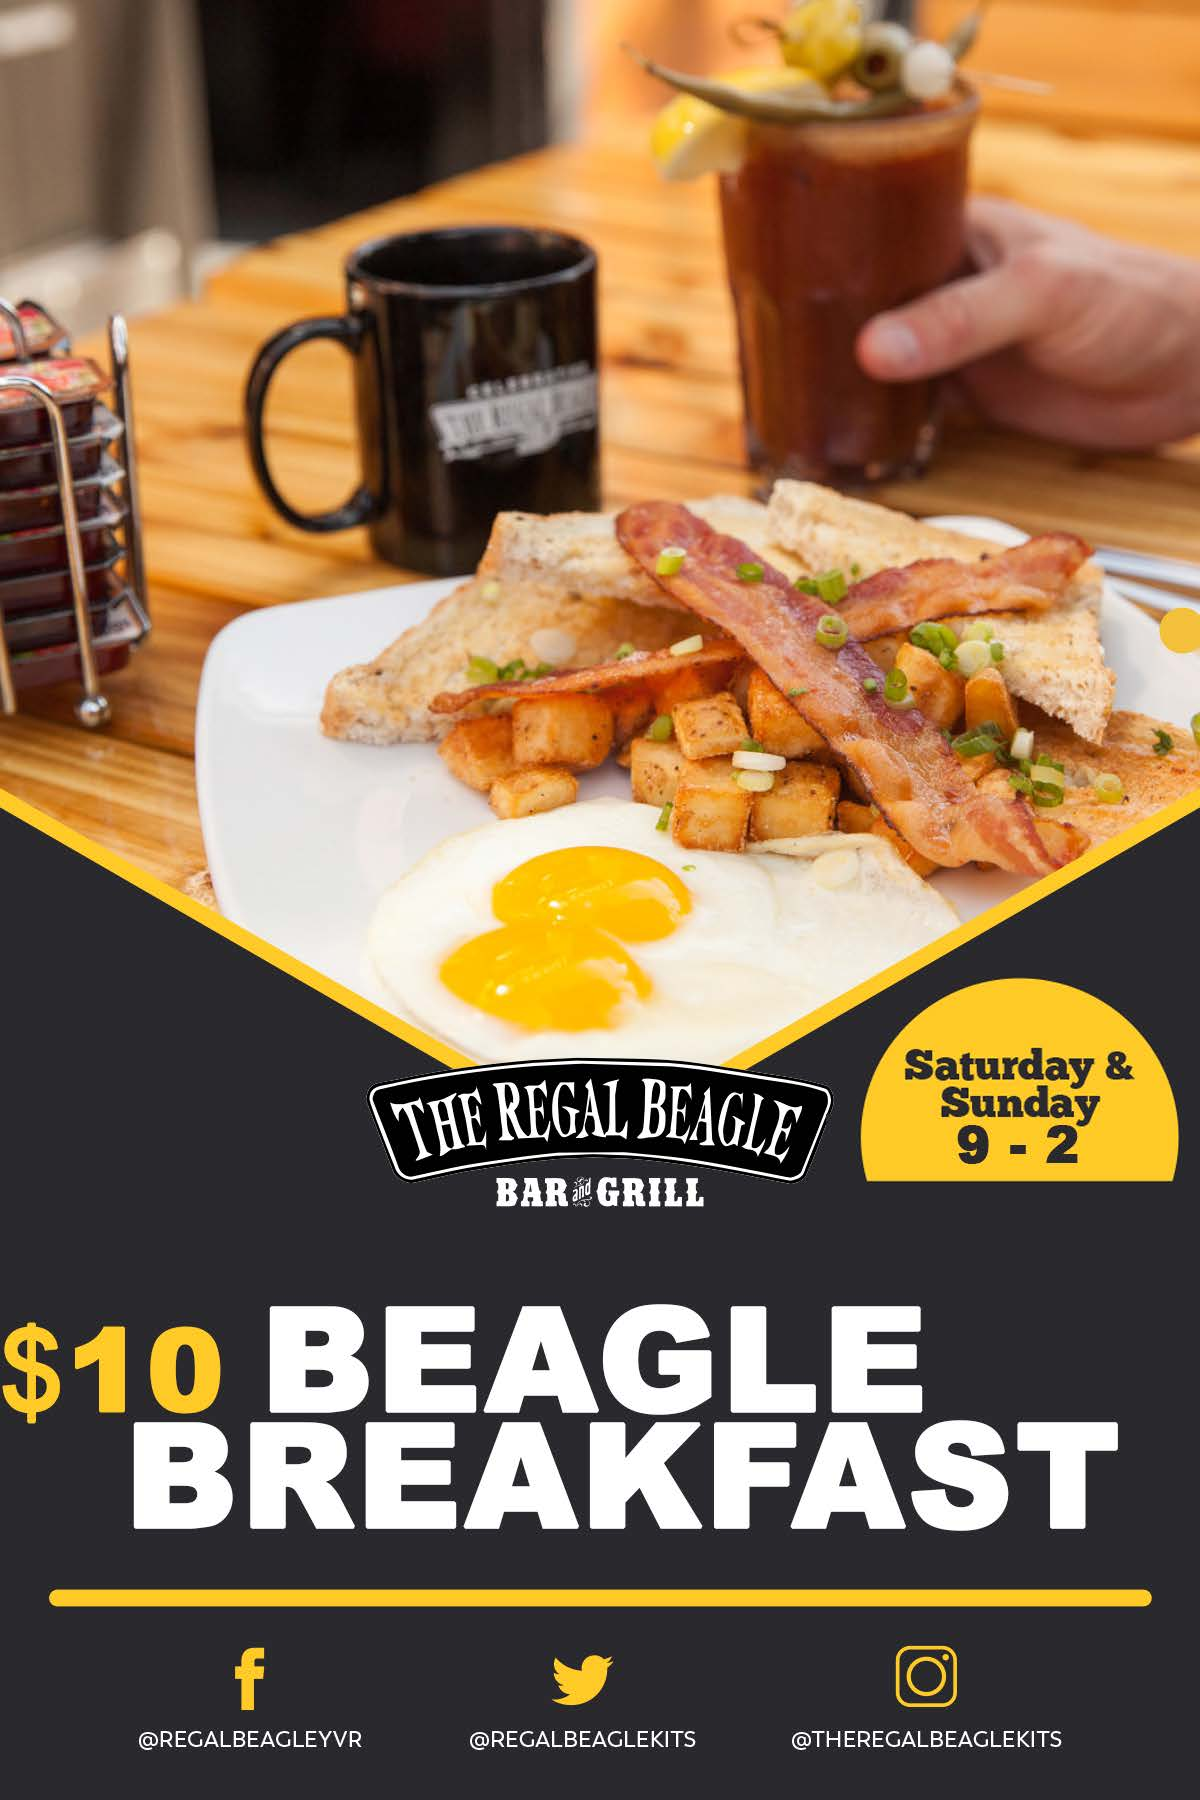 Image of the Beagle Breakfast with a caesar with text: Saturday & Sunday 9-2. $10 Beagle Breakfast